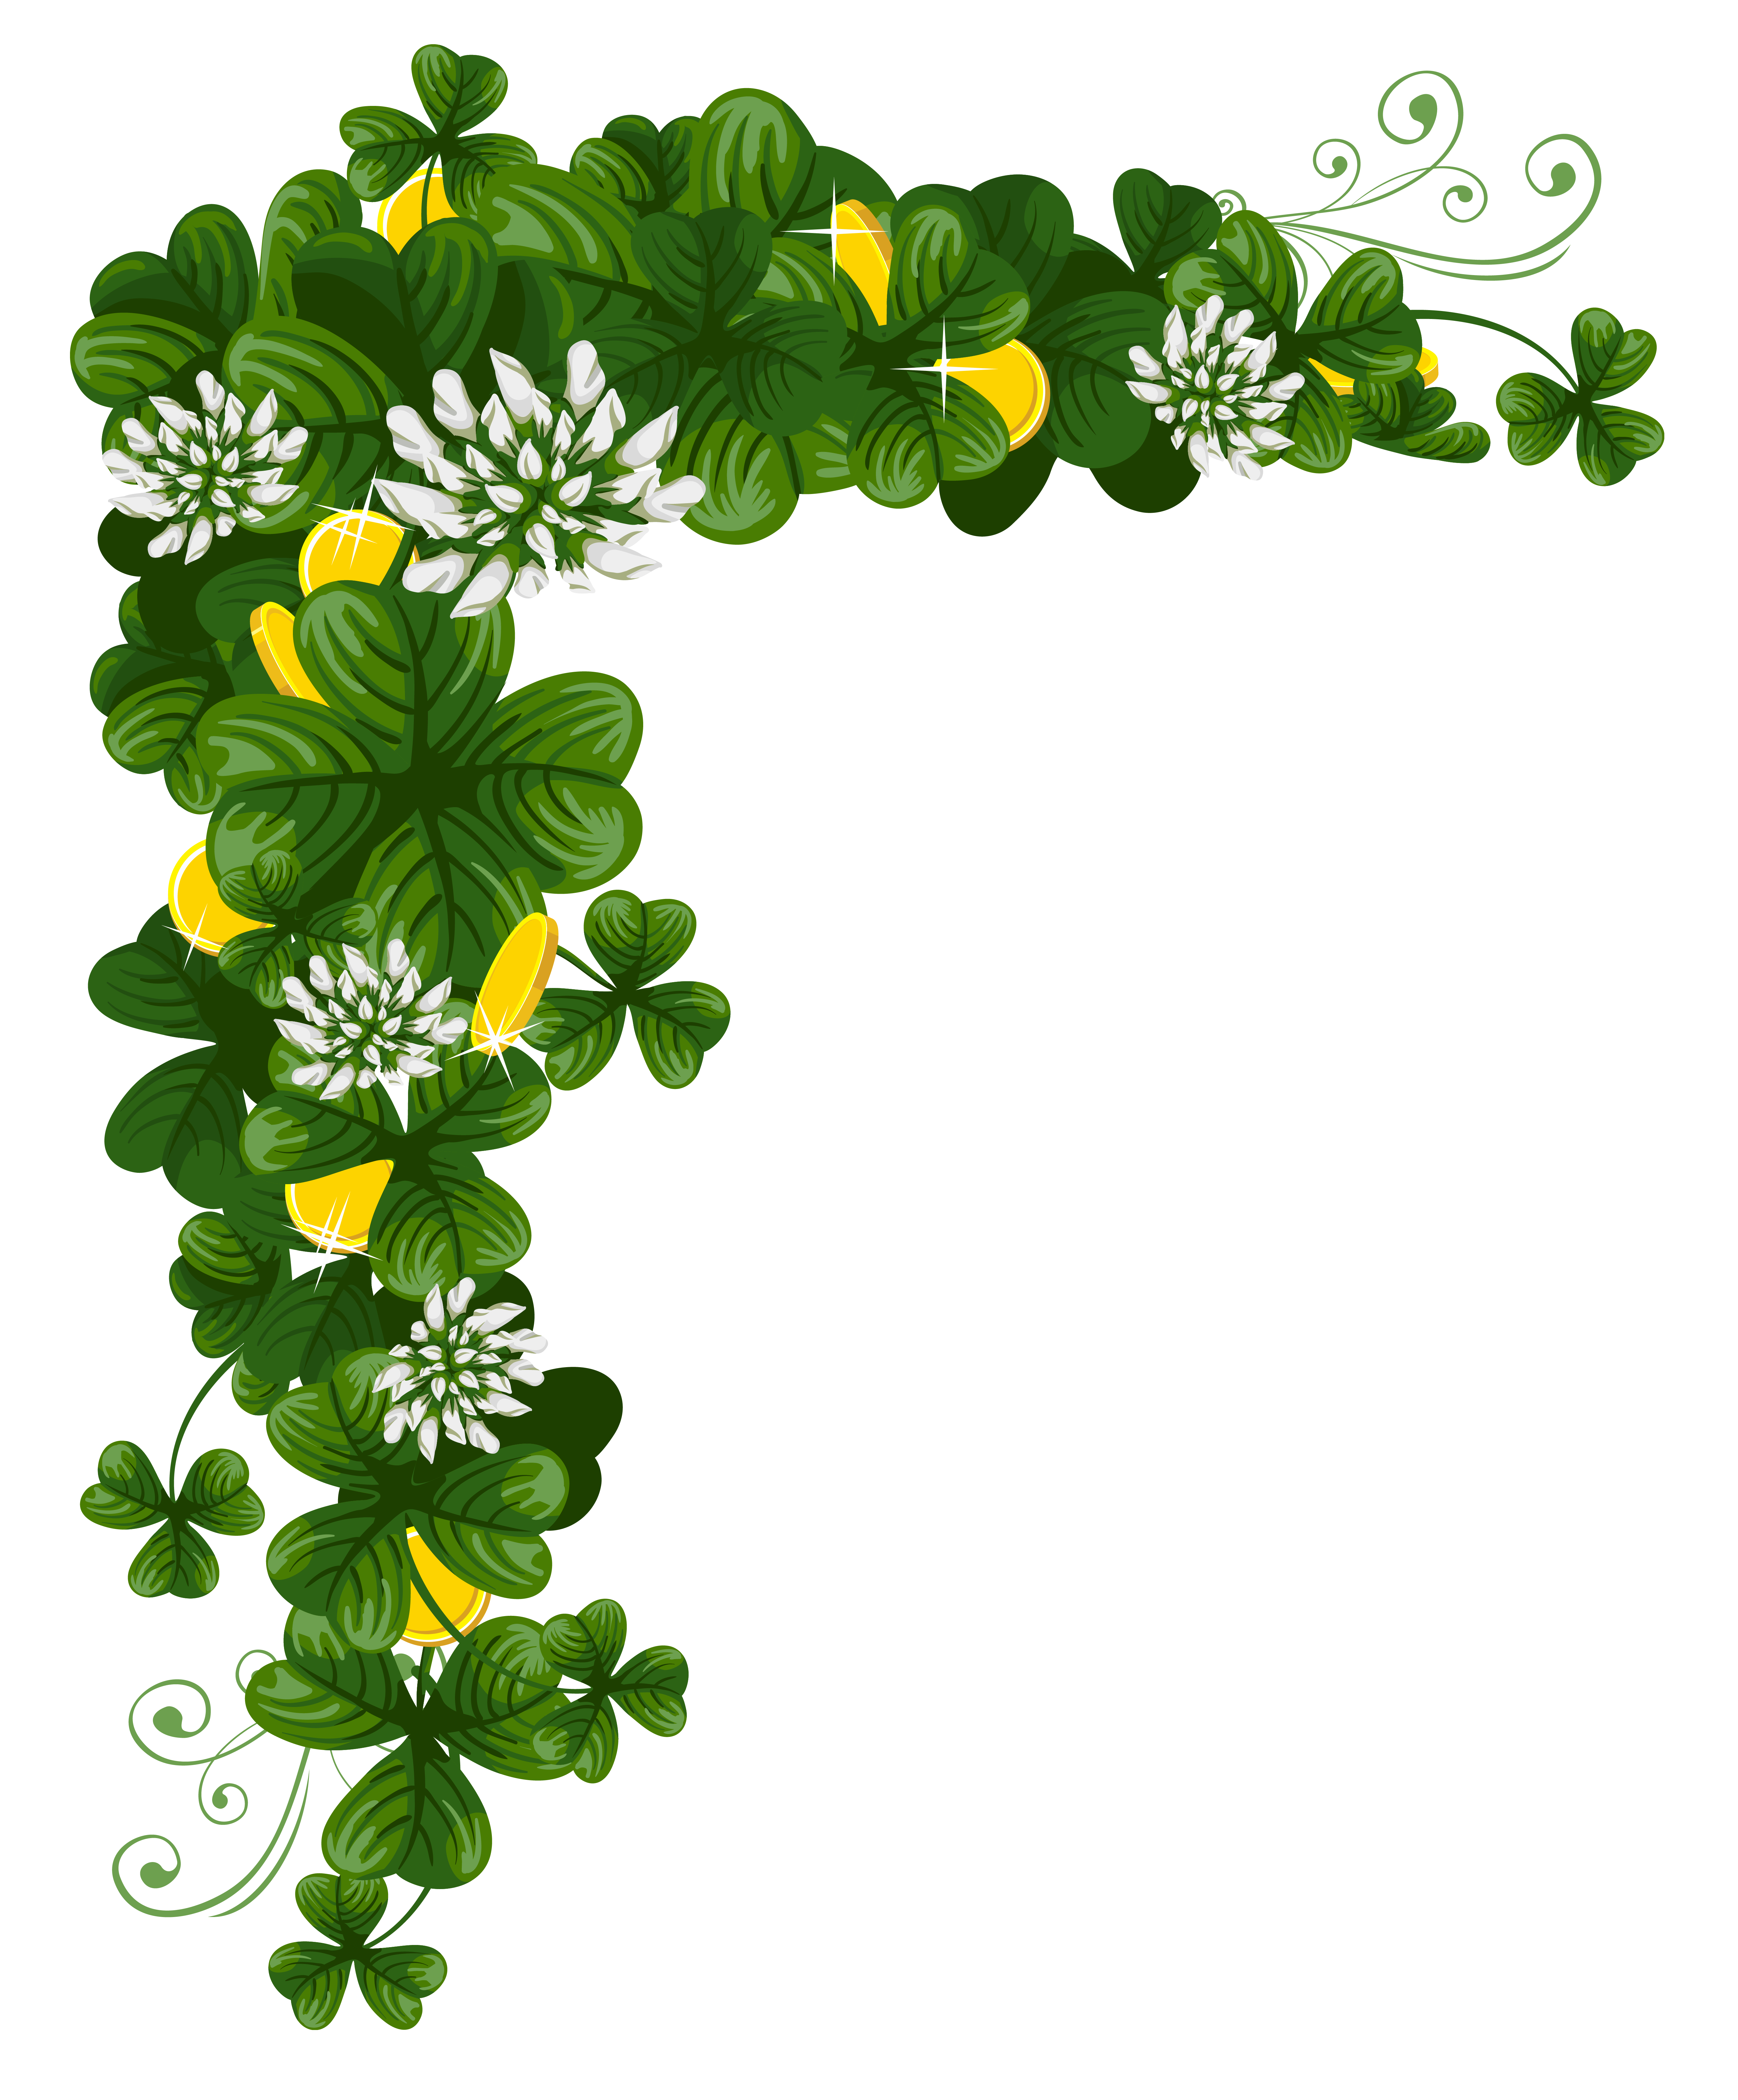 5661x6840 Background Clipart St Patrick's Day